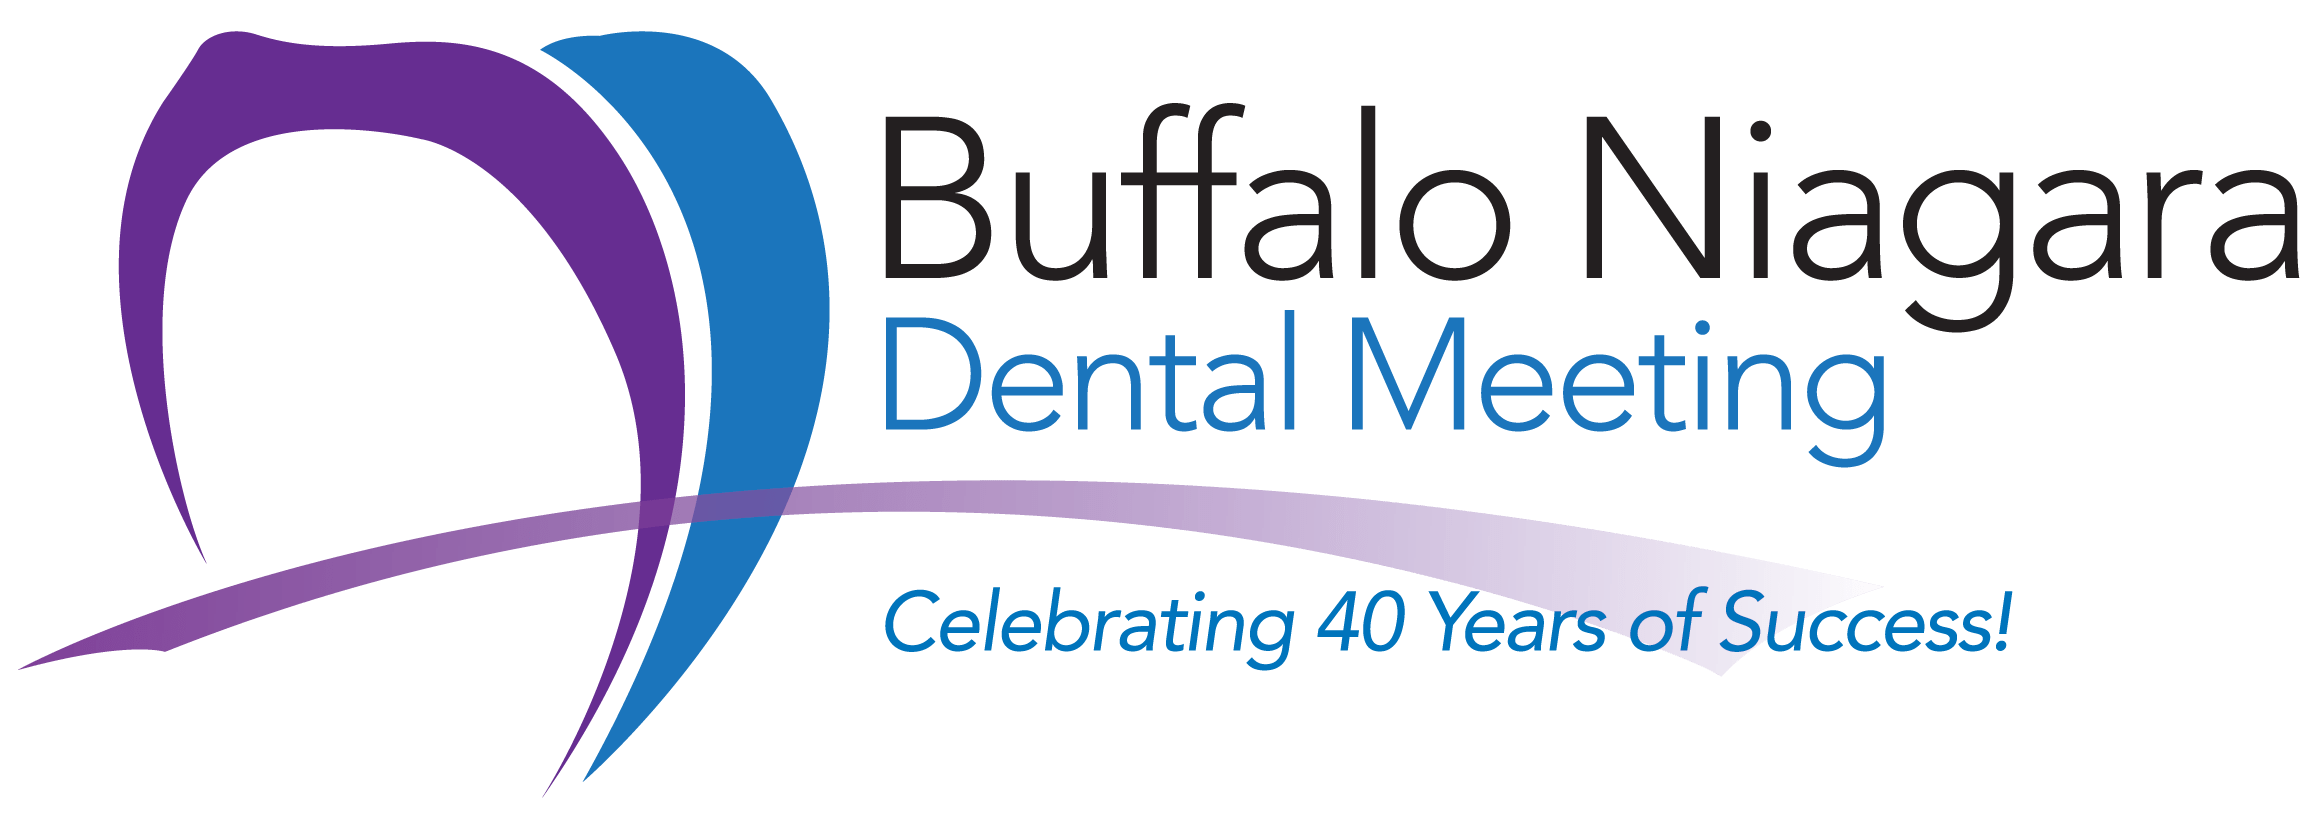 Buffalo Niagara Dental Meeting